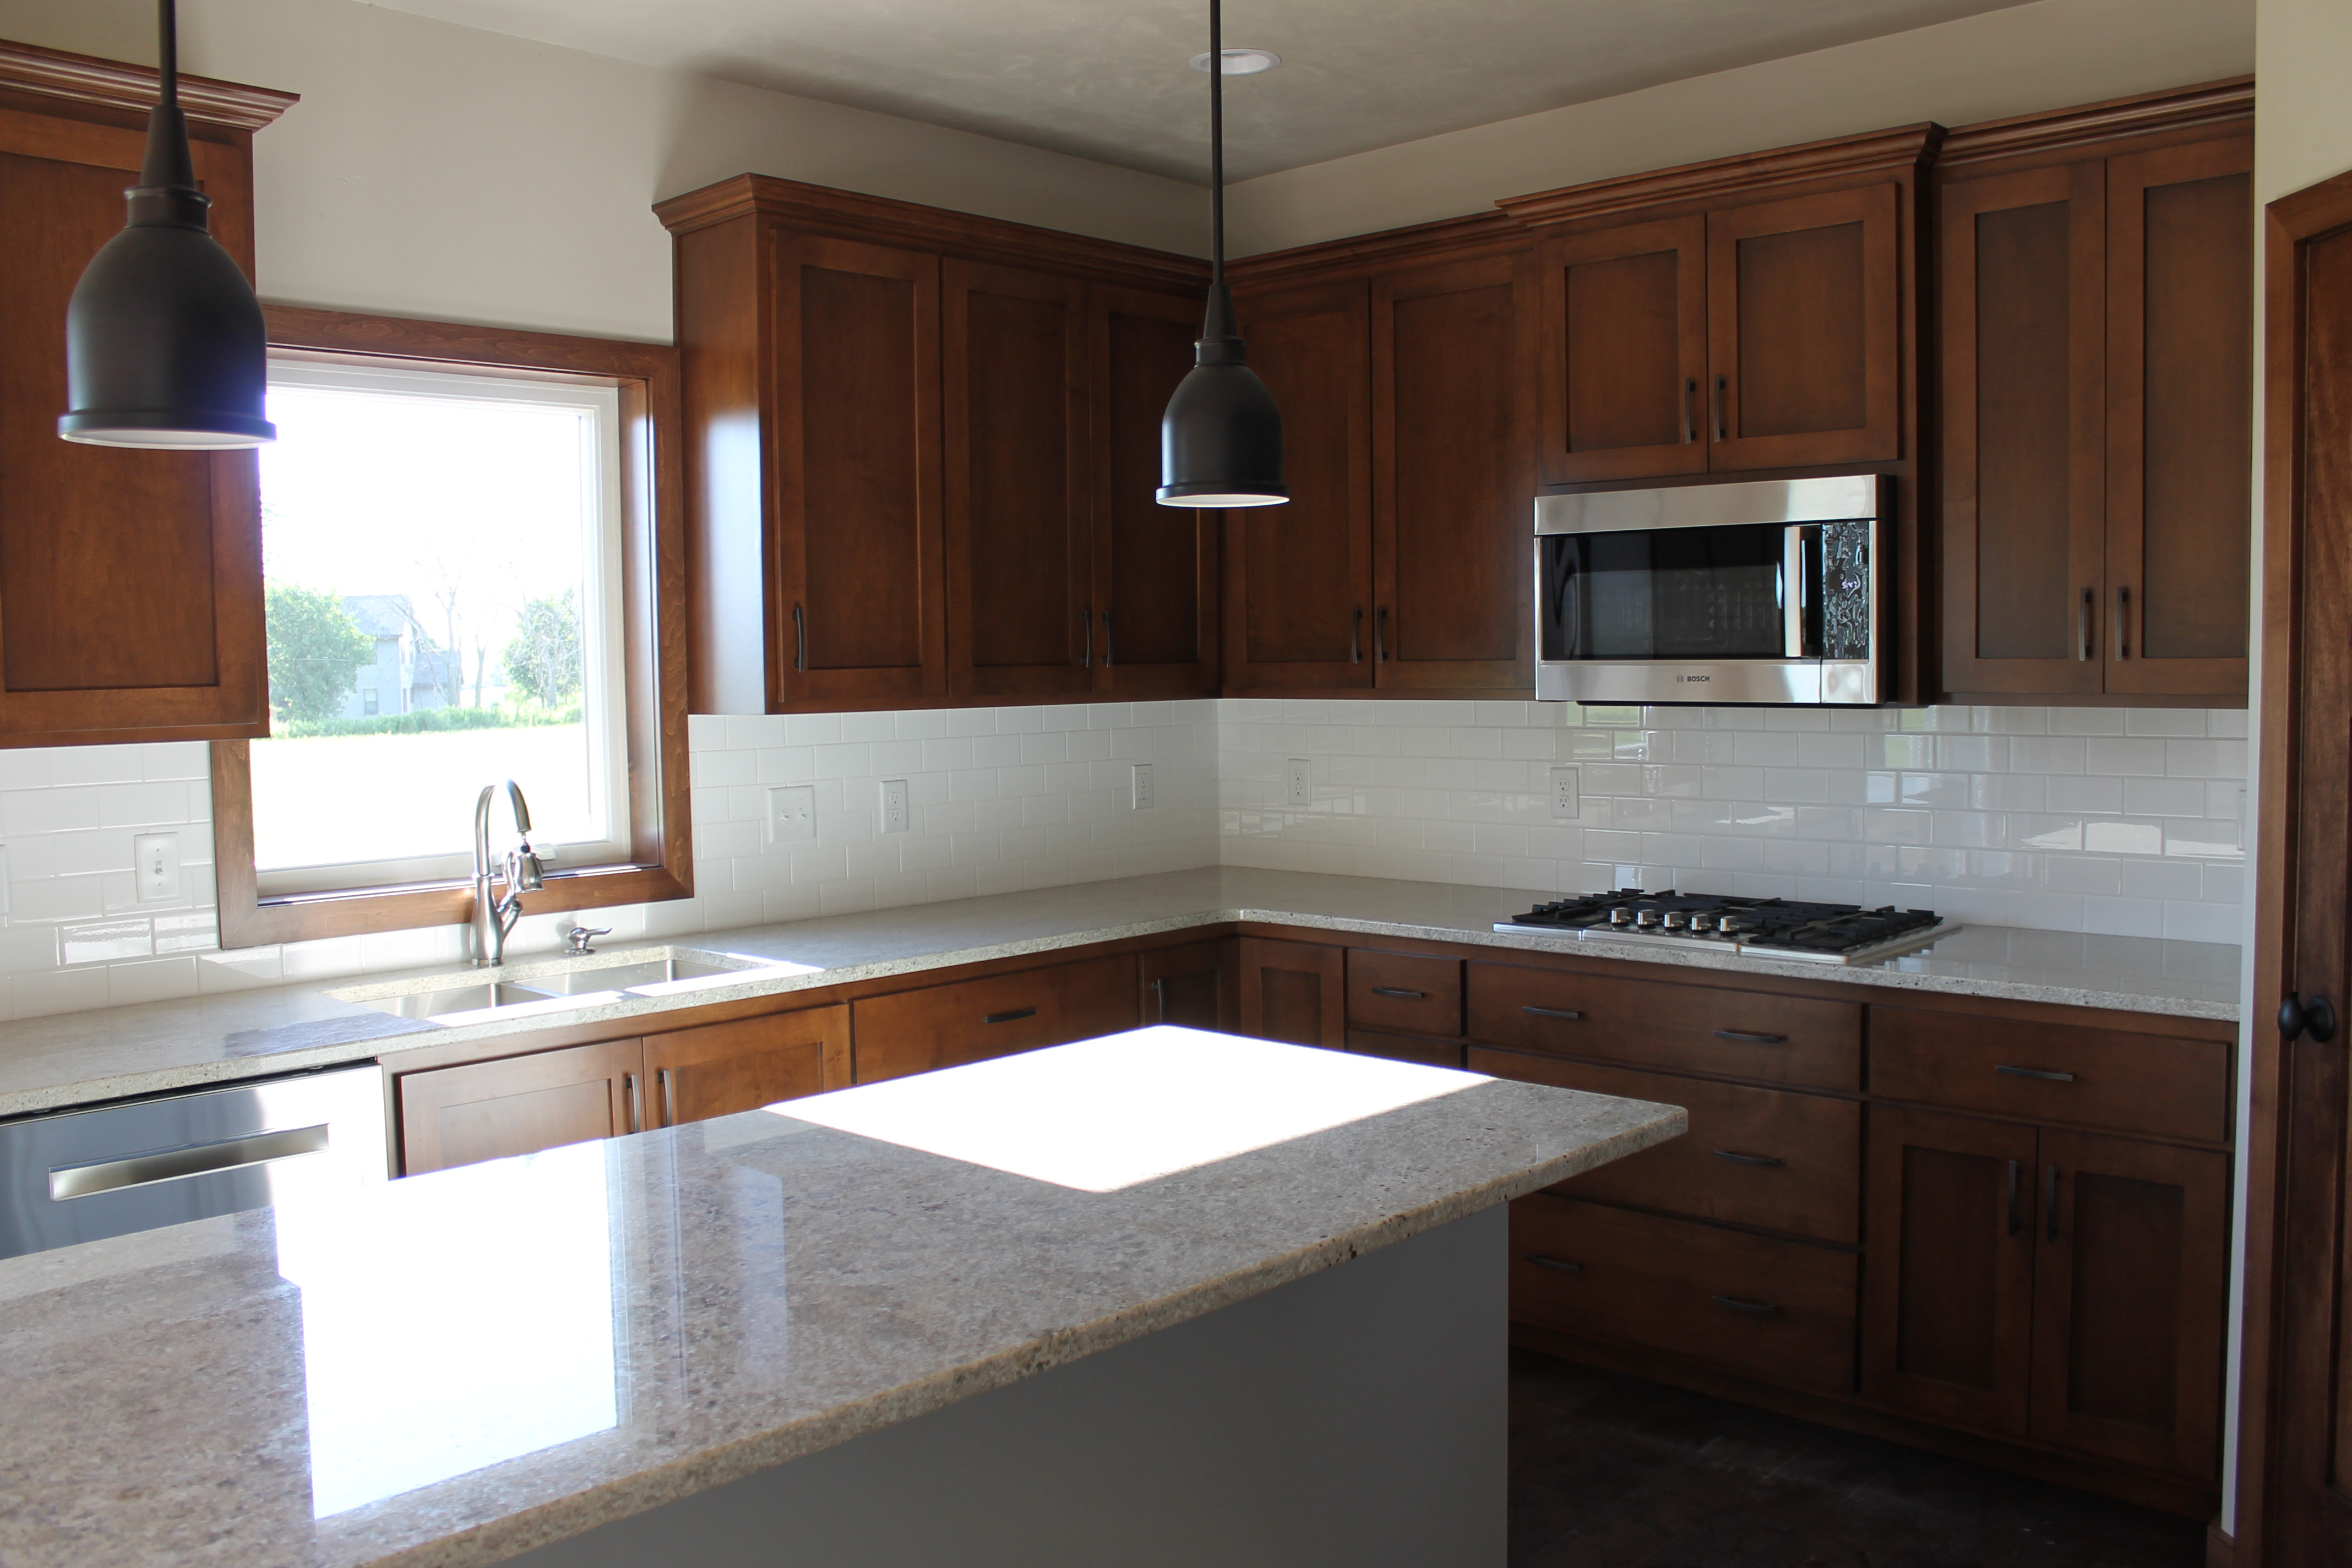 How to Choose Crown Molding for Cabinetry - Katie Jane ...